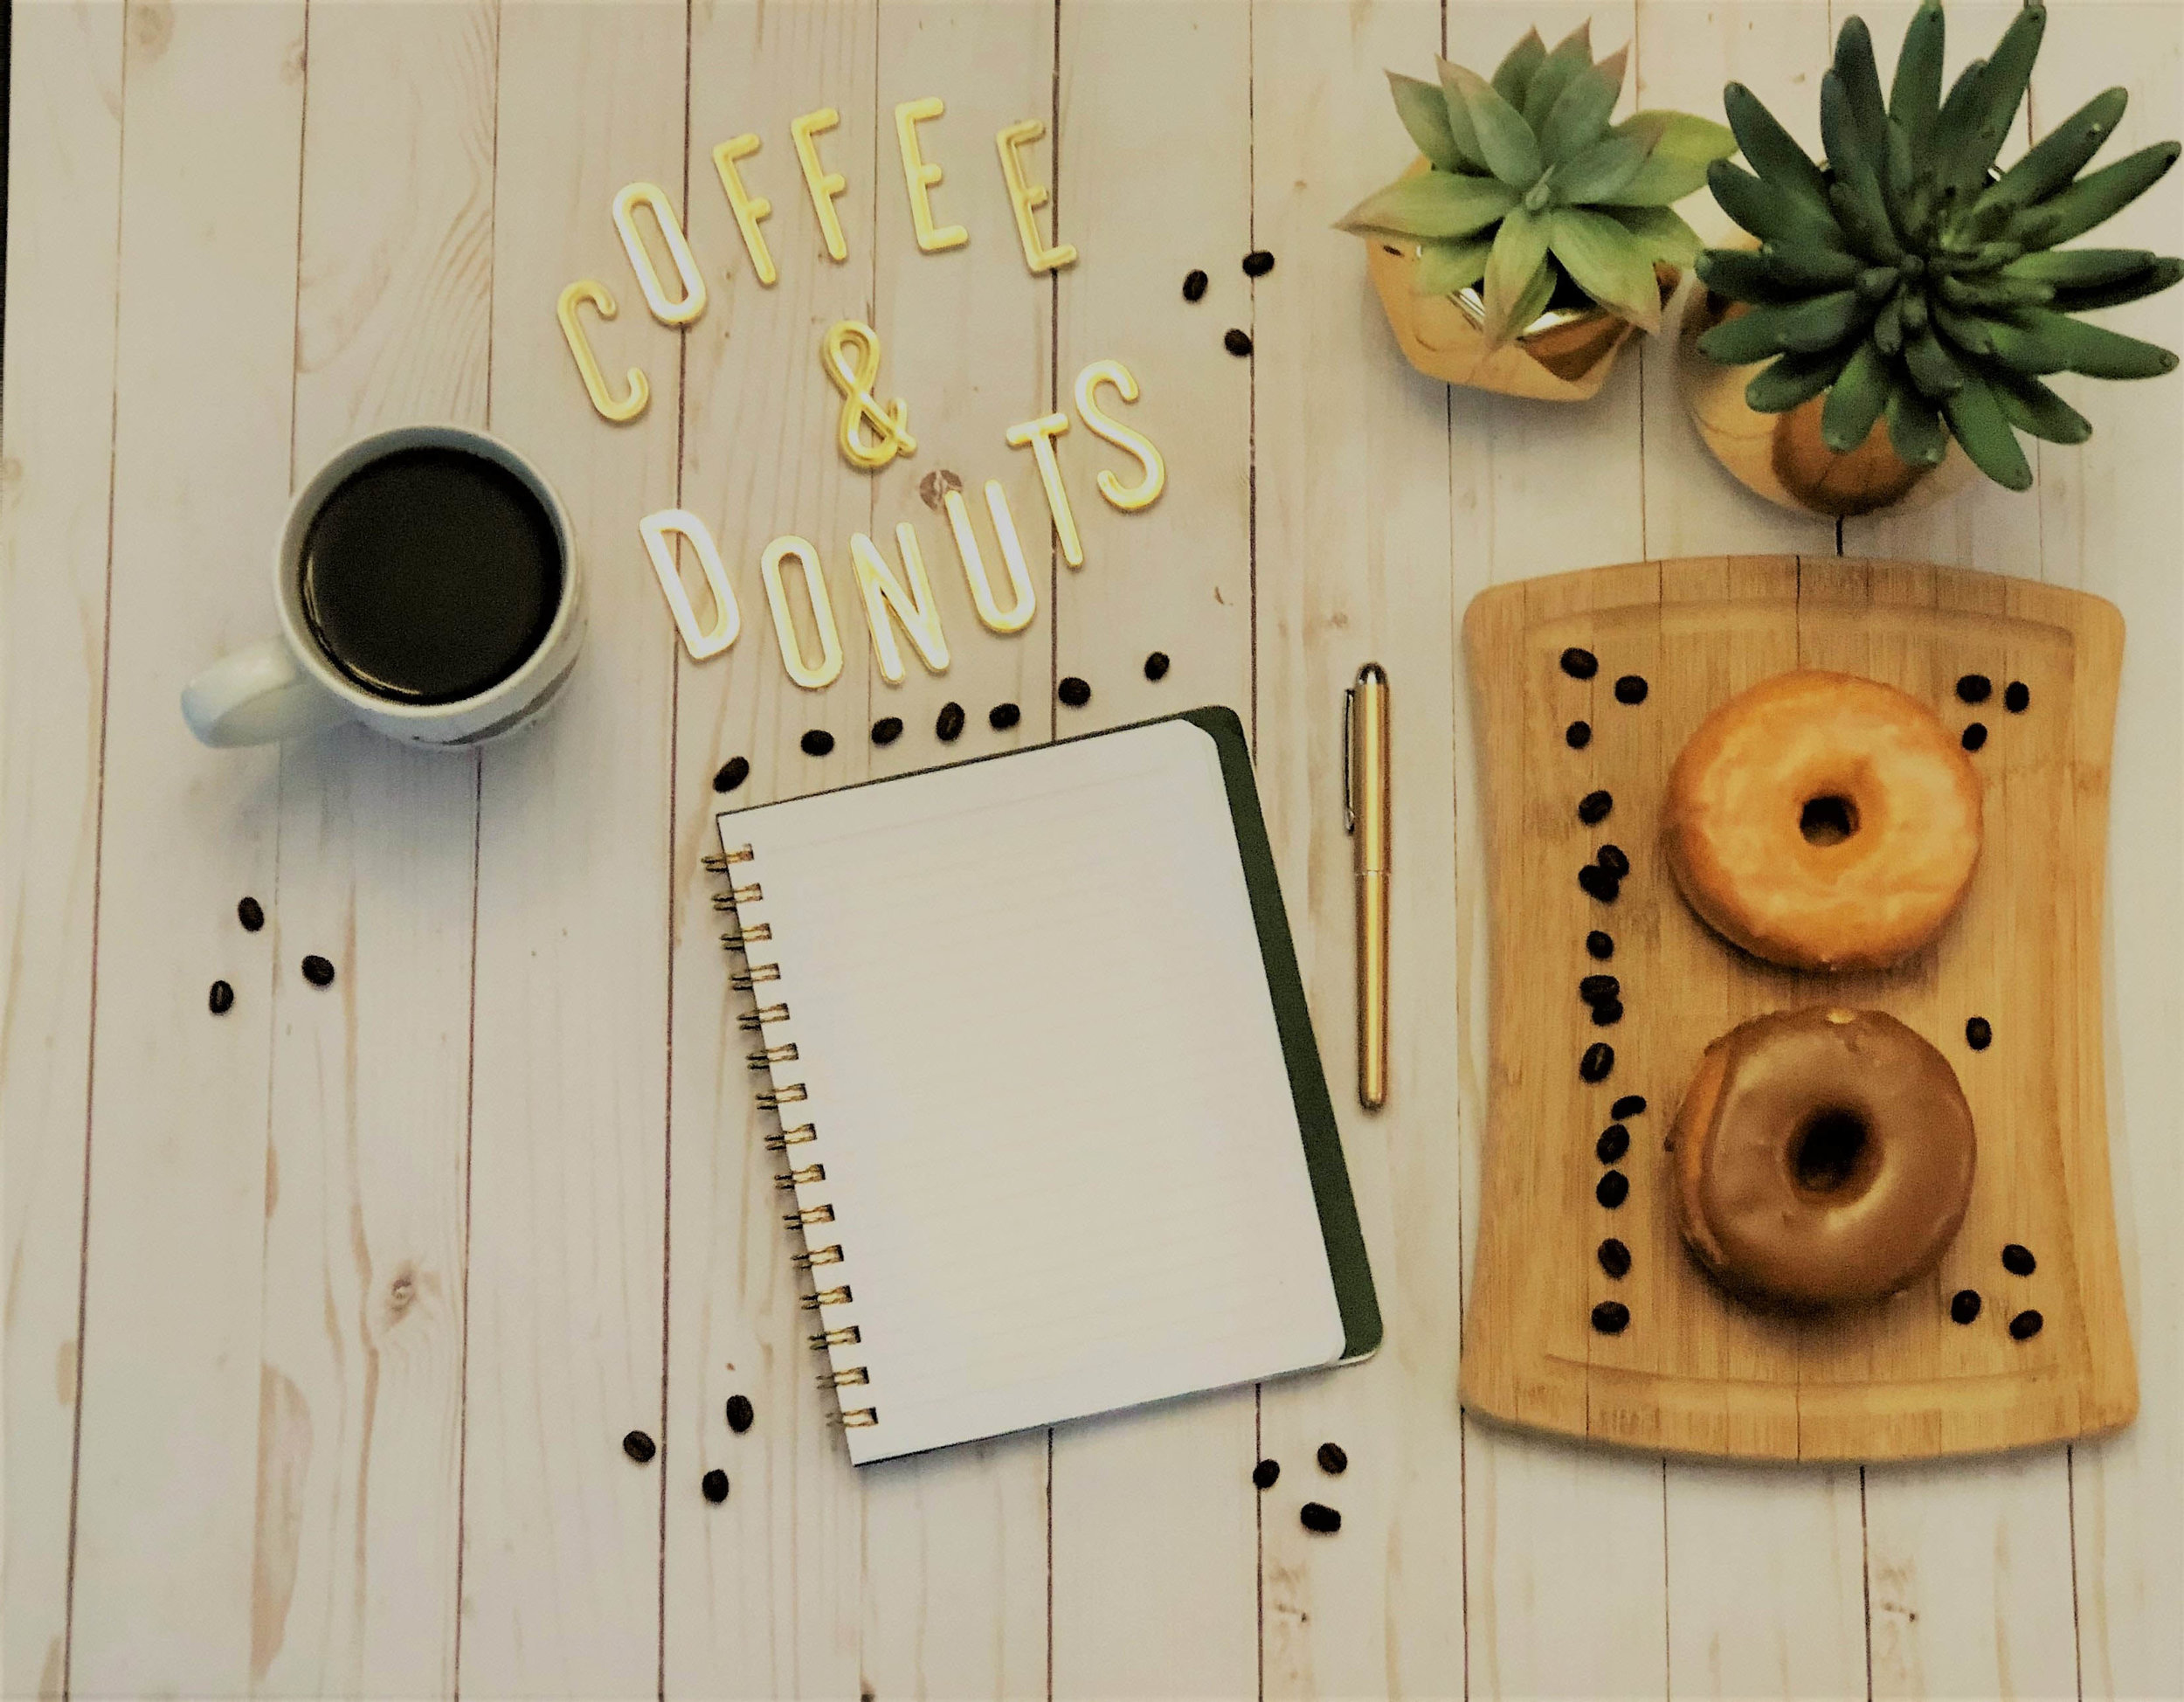 Coffee and donuts go together like peanut butter and jelly. Find out what other foods pair perfectly with your favorite cup of joe!